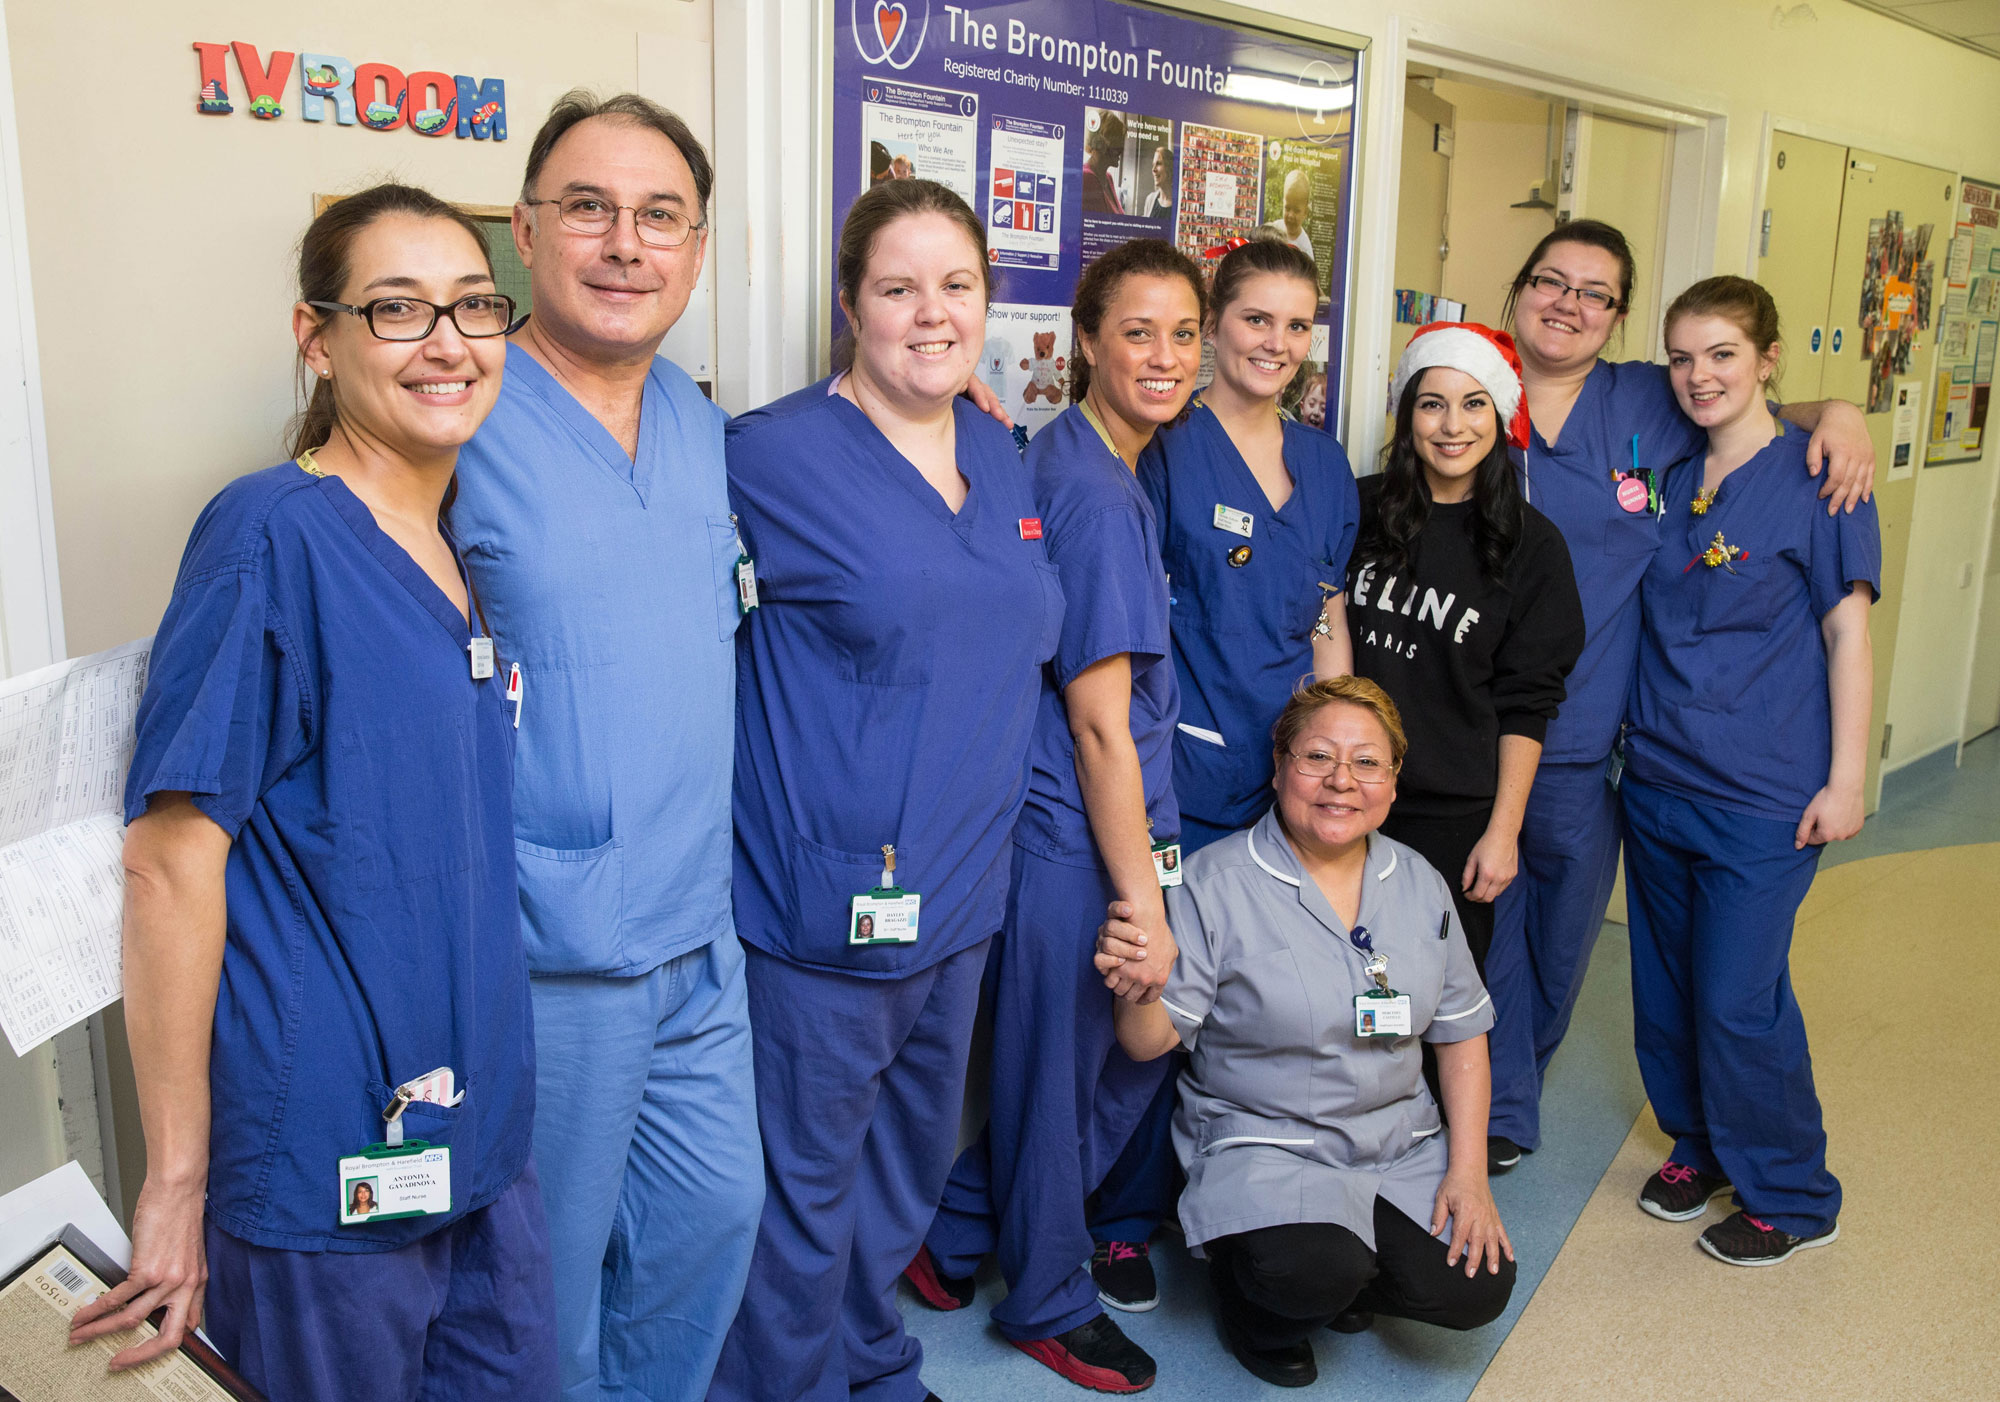 Made In Chelsea Stars Christmas Ward Visit at Royal Brompton Hospital 14